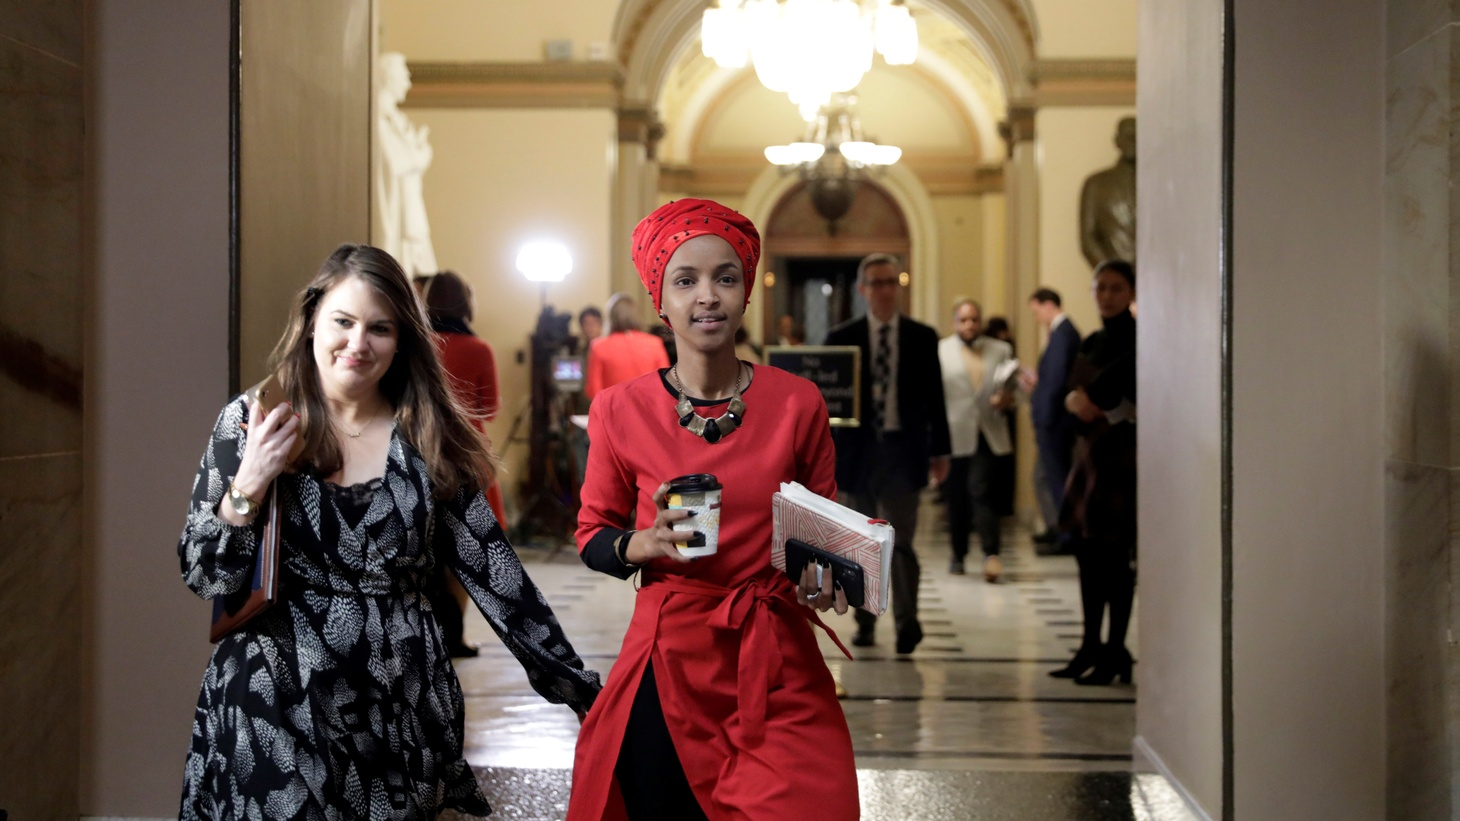 U.S. Rep. Ilhan Omar (D-MN) (R) walks on Capitol Hill in Washington, U.S., January 16, 2019.